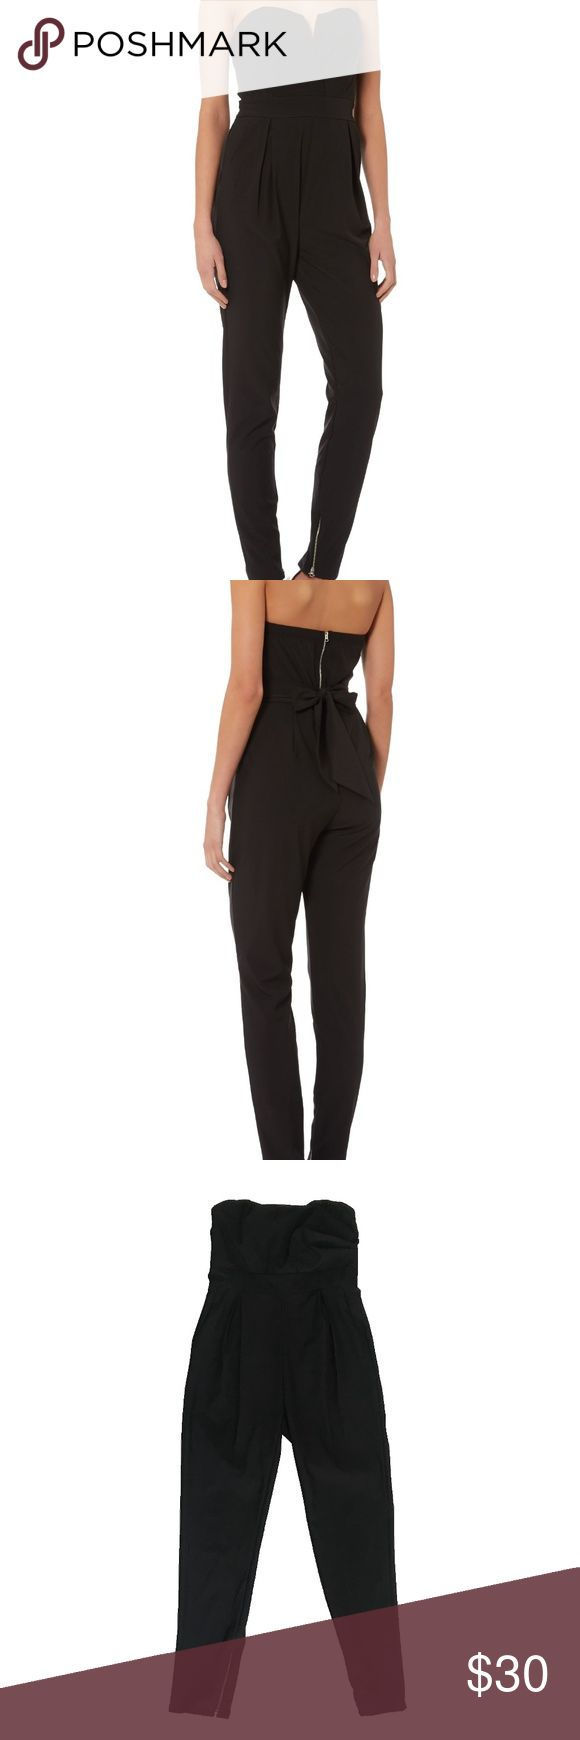 "TFNC London Black Strapless Jumpsuit TFNC London black strapless jumpsuit with zipper leg openings at bottom  Previously owned, like new  Flat Measurements Bust: 15 1/2"" Waist: 14 1/2"" Rise: 12"" Inseam: 29"" Length top to waist: 9"" Length waist to leg opening: 40 1/2"" Leg opening: 6""  FFS291 TFNC Pants Jumpsuits & Rompers"